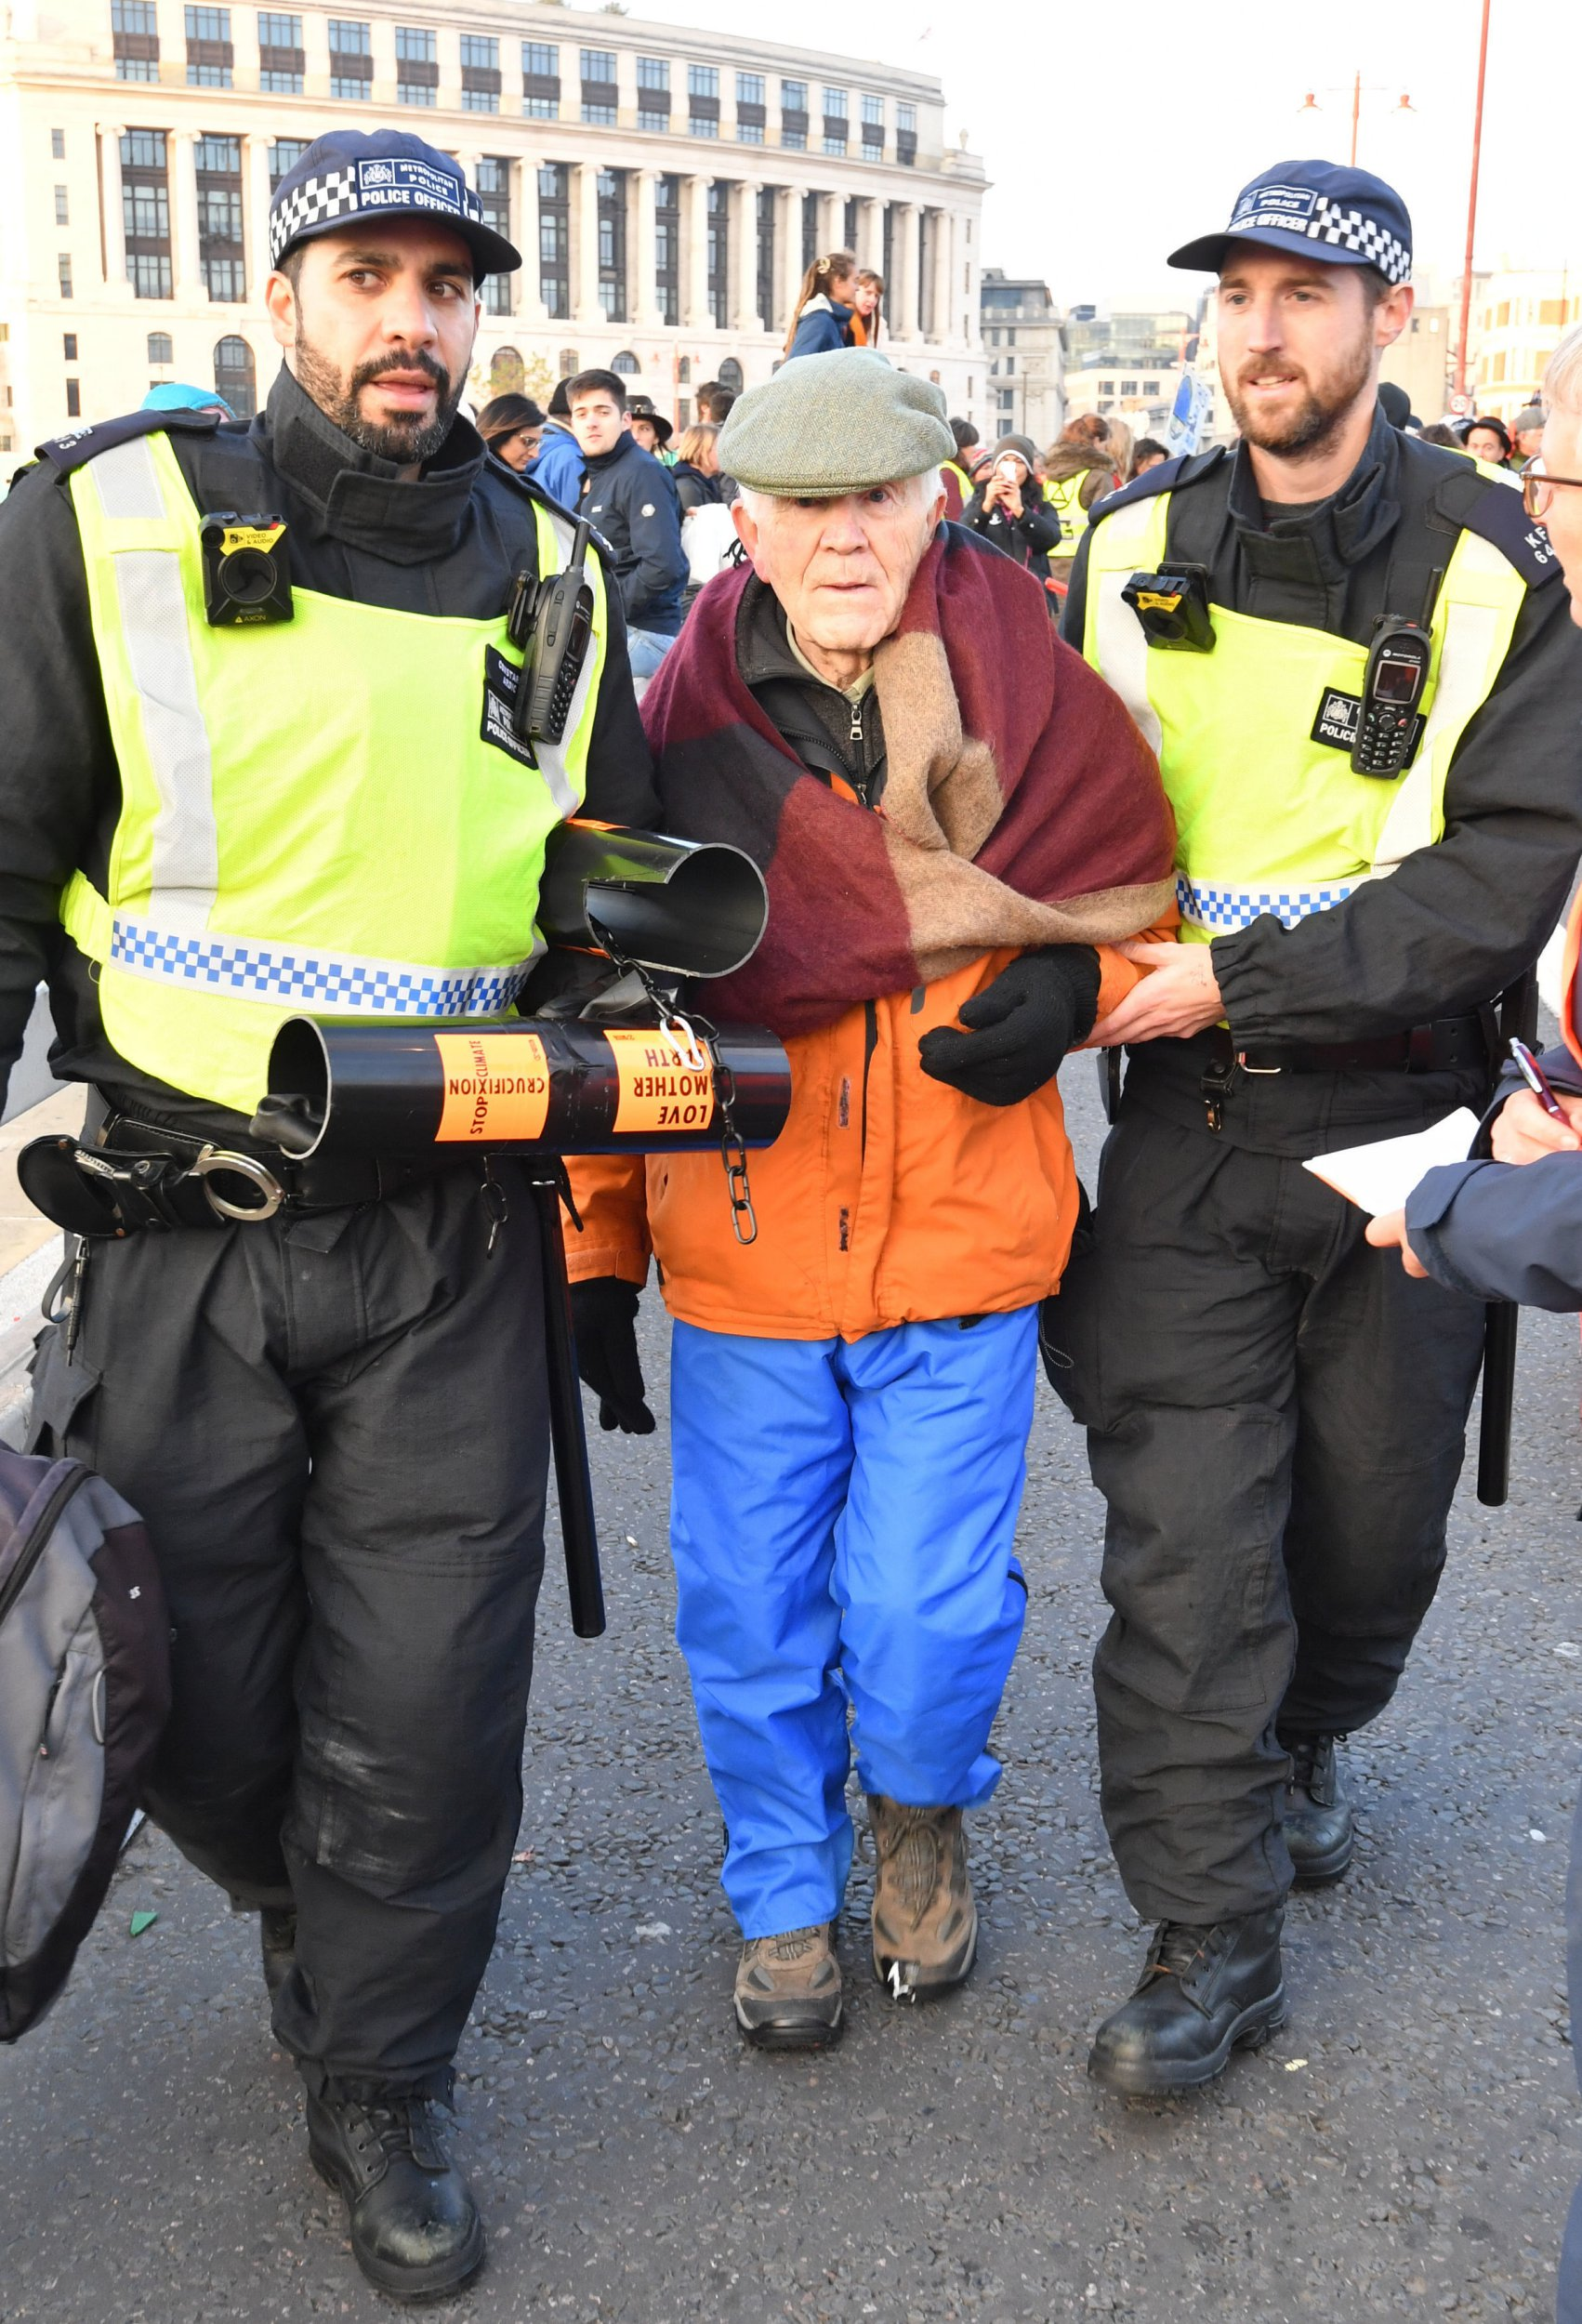 A demonstrator is led away by police on Blackfriars Bridge in London during a protest called by Extinction Rebellion to raise awareness of the dangers posed by climate change. PRESS ASSOCIATION Photo. Picture date: Saturday November 17, 2018. See PA story PROTEST Rebellion. Photo credit should read: John Stillwell/PA Wire